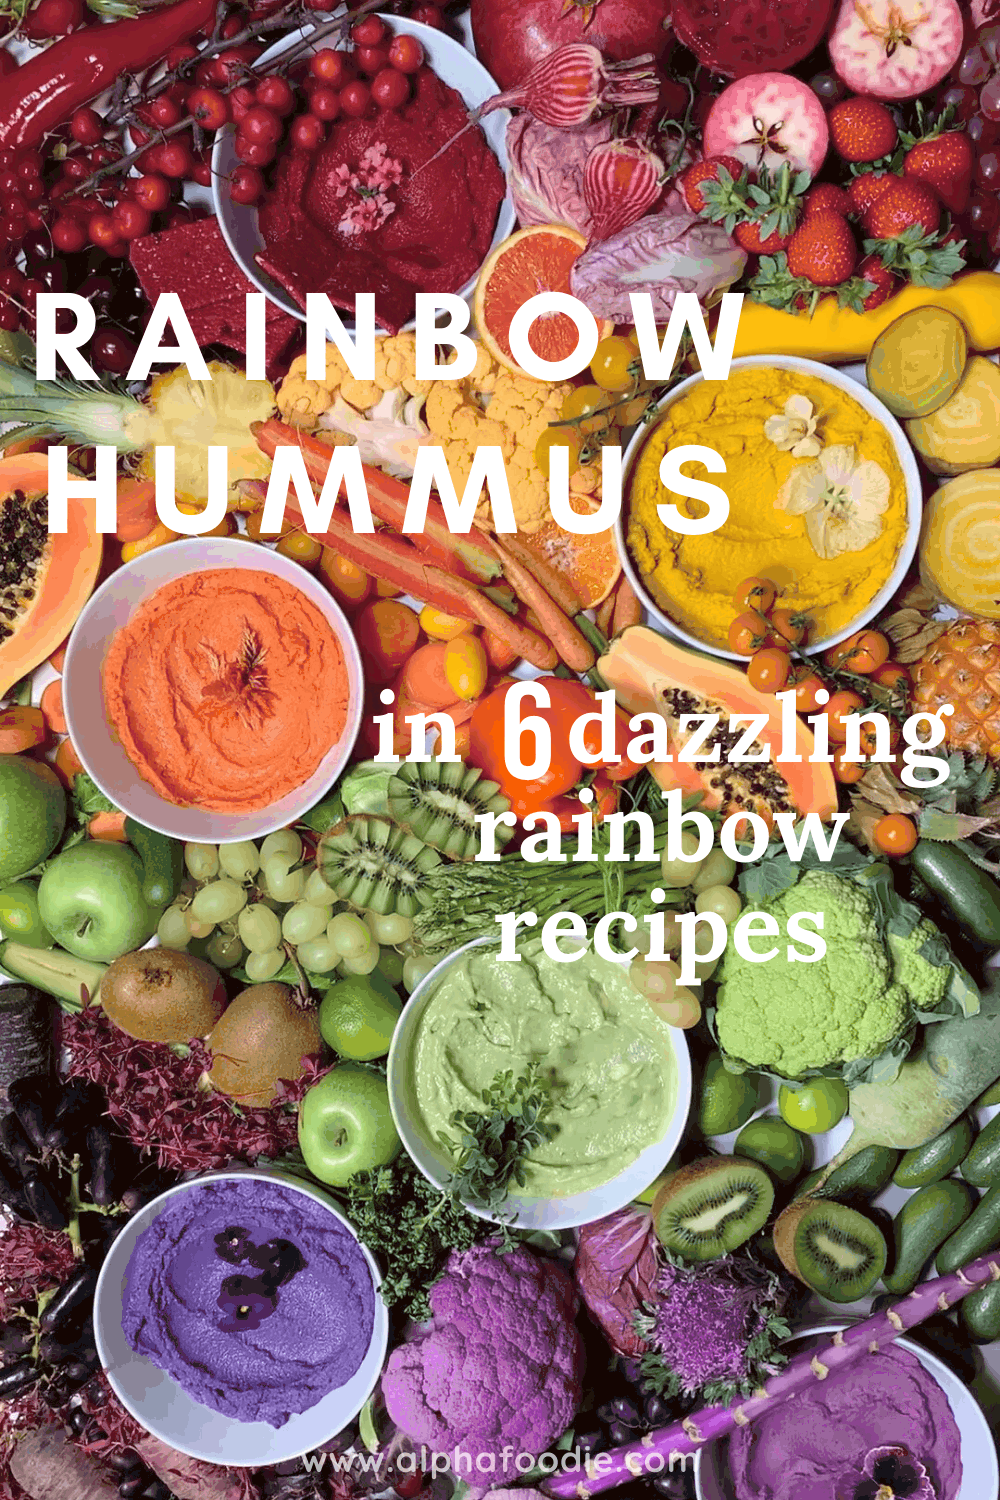 rainbow hummus varieties with rainbow veggies